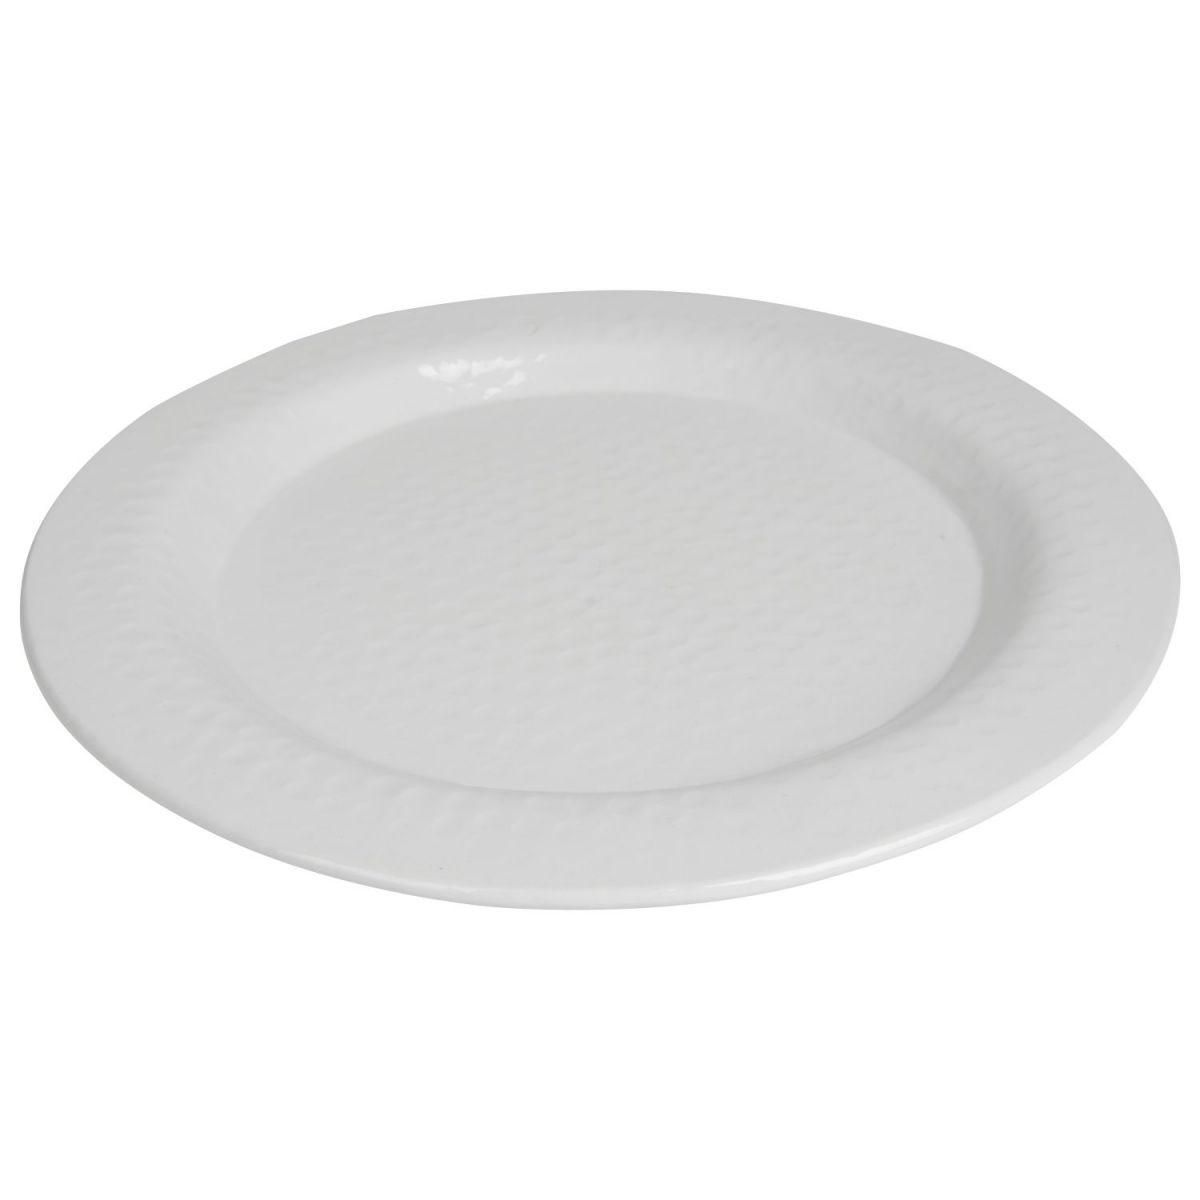 plate hammered white 39cm